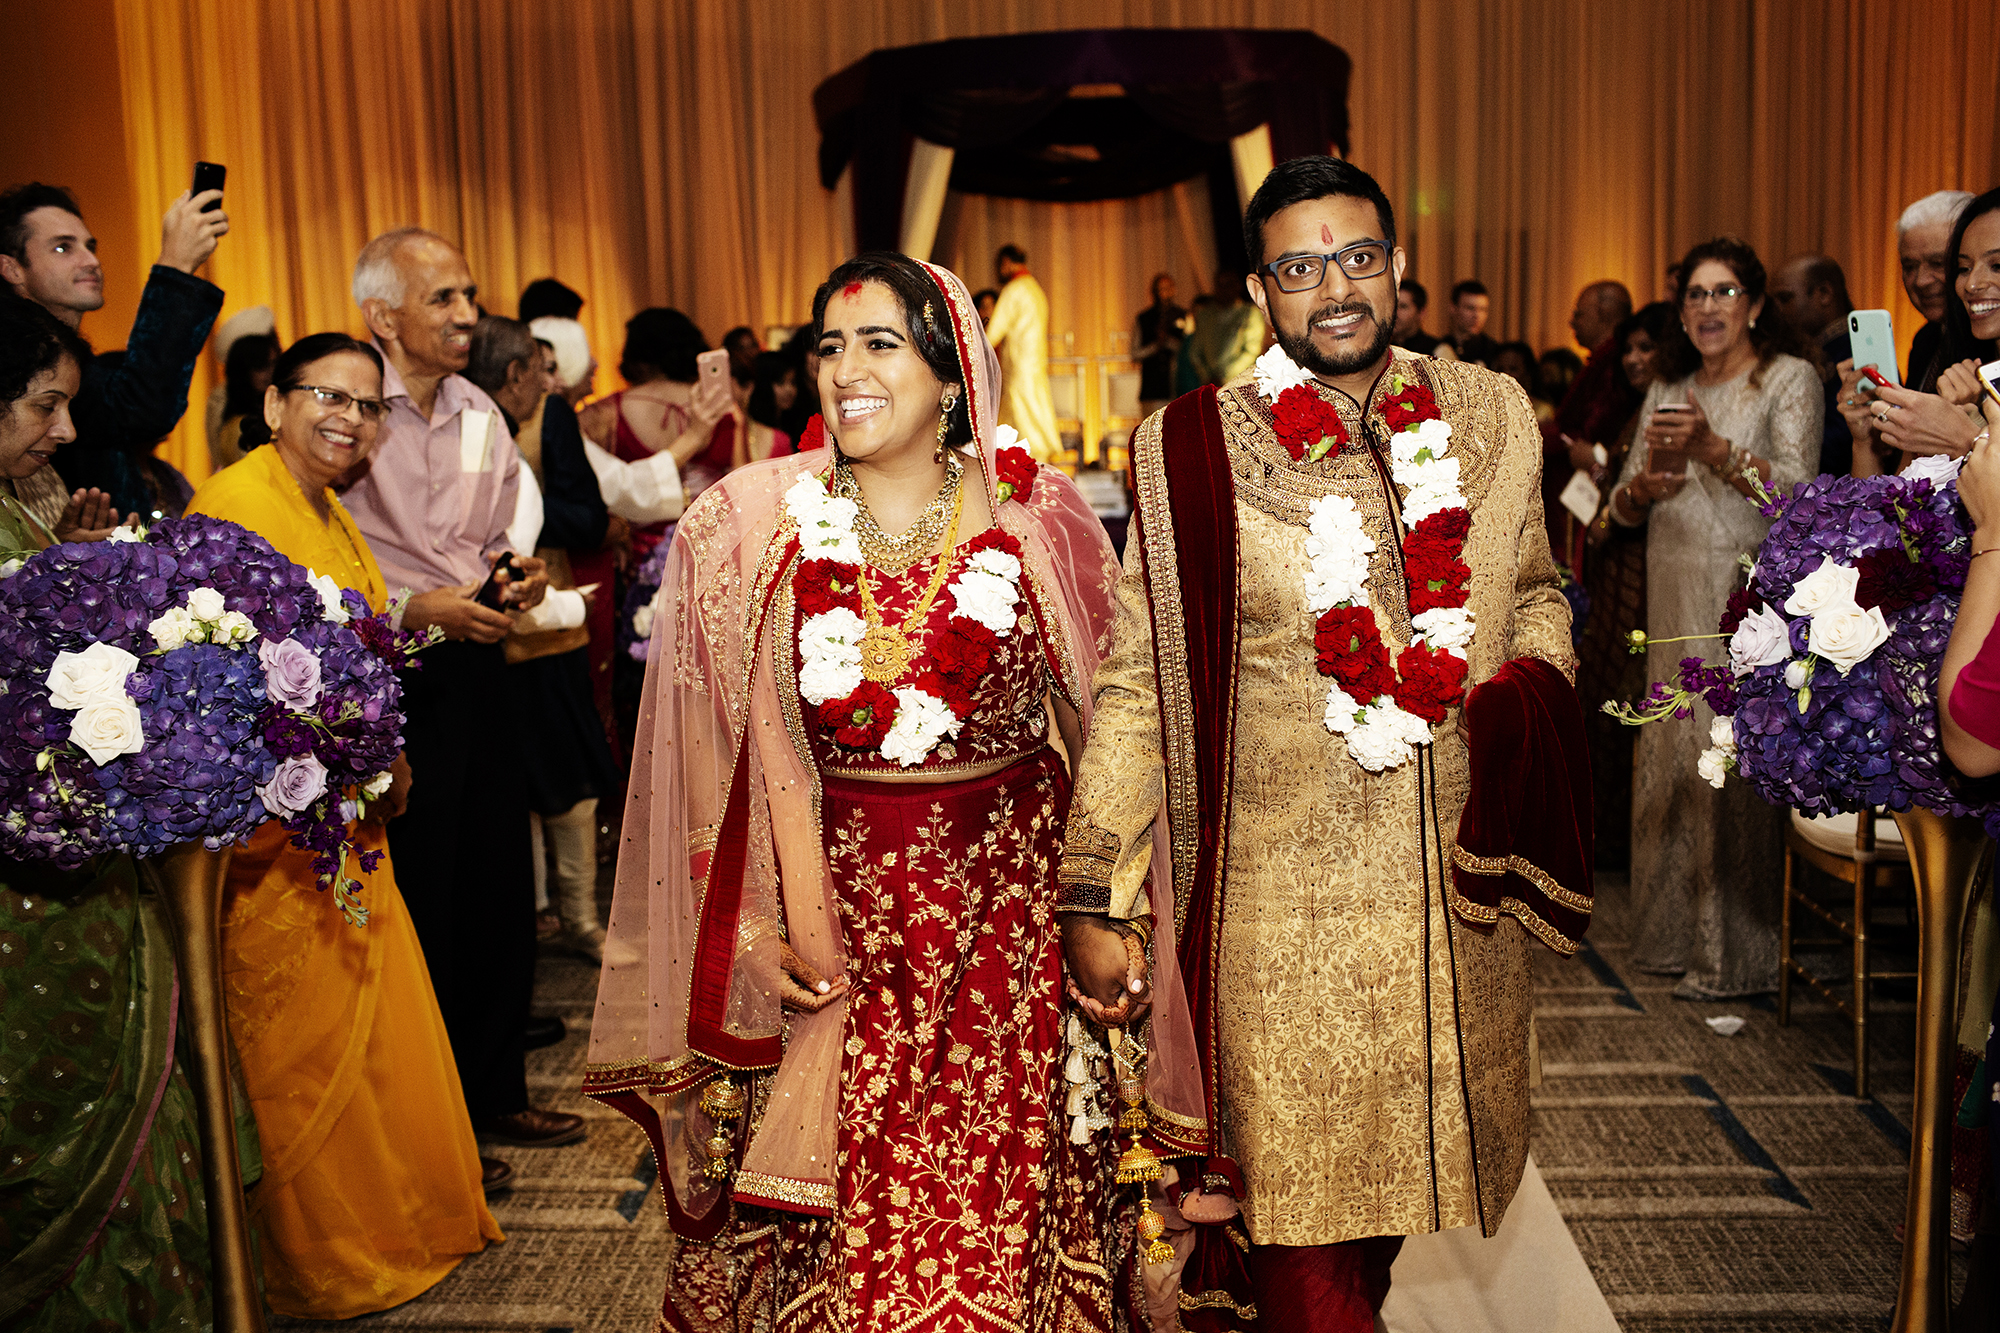 Indian Bride and Groom | Minneapolis Wedding Photos | Photography by Photogen Inc. | Eliesa Johnson | Luxury Wedding Photography Based in Minnesota